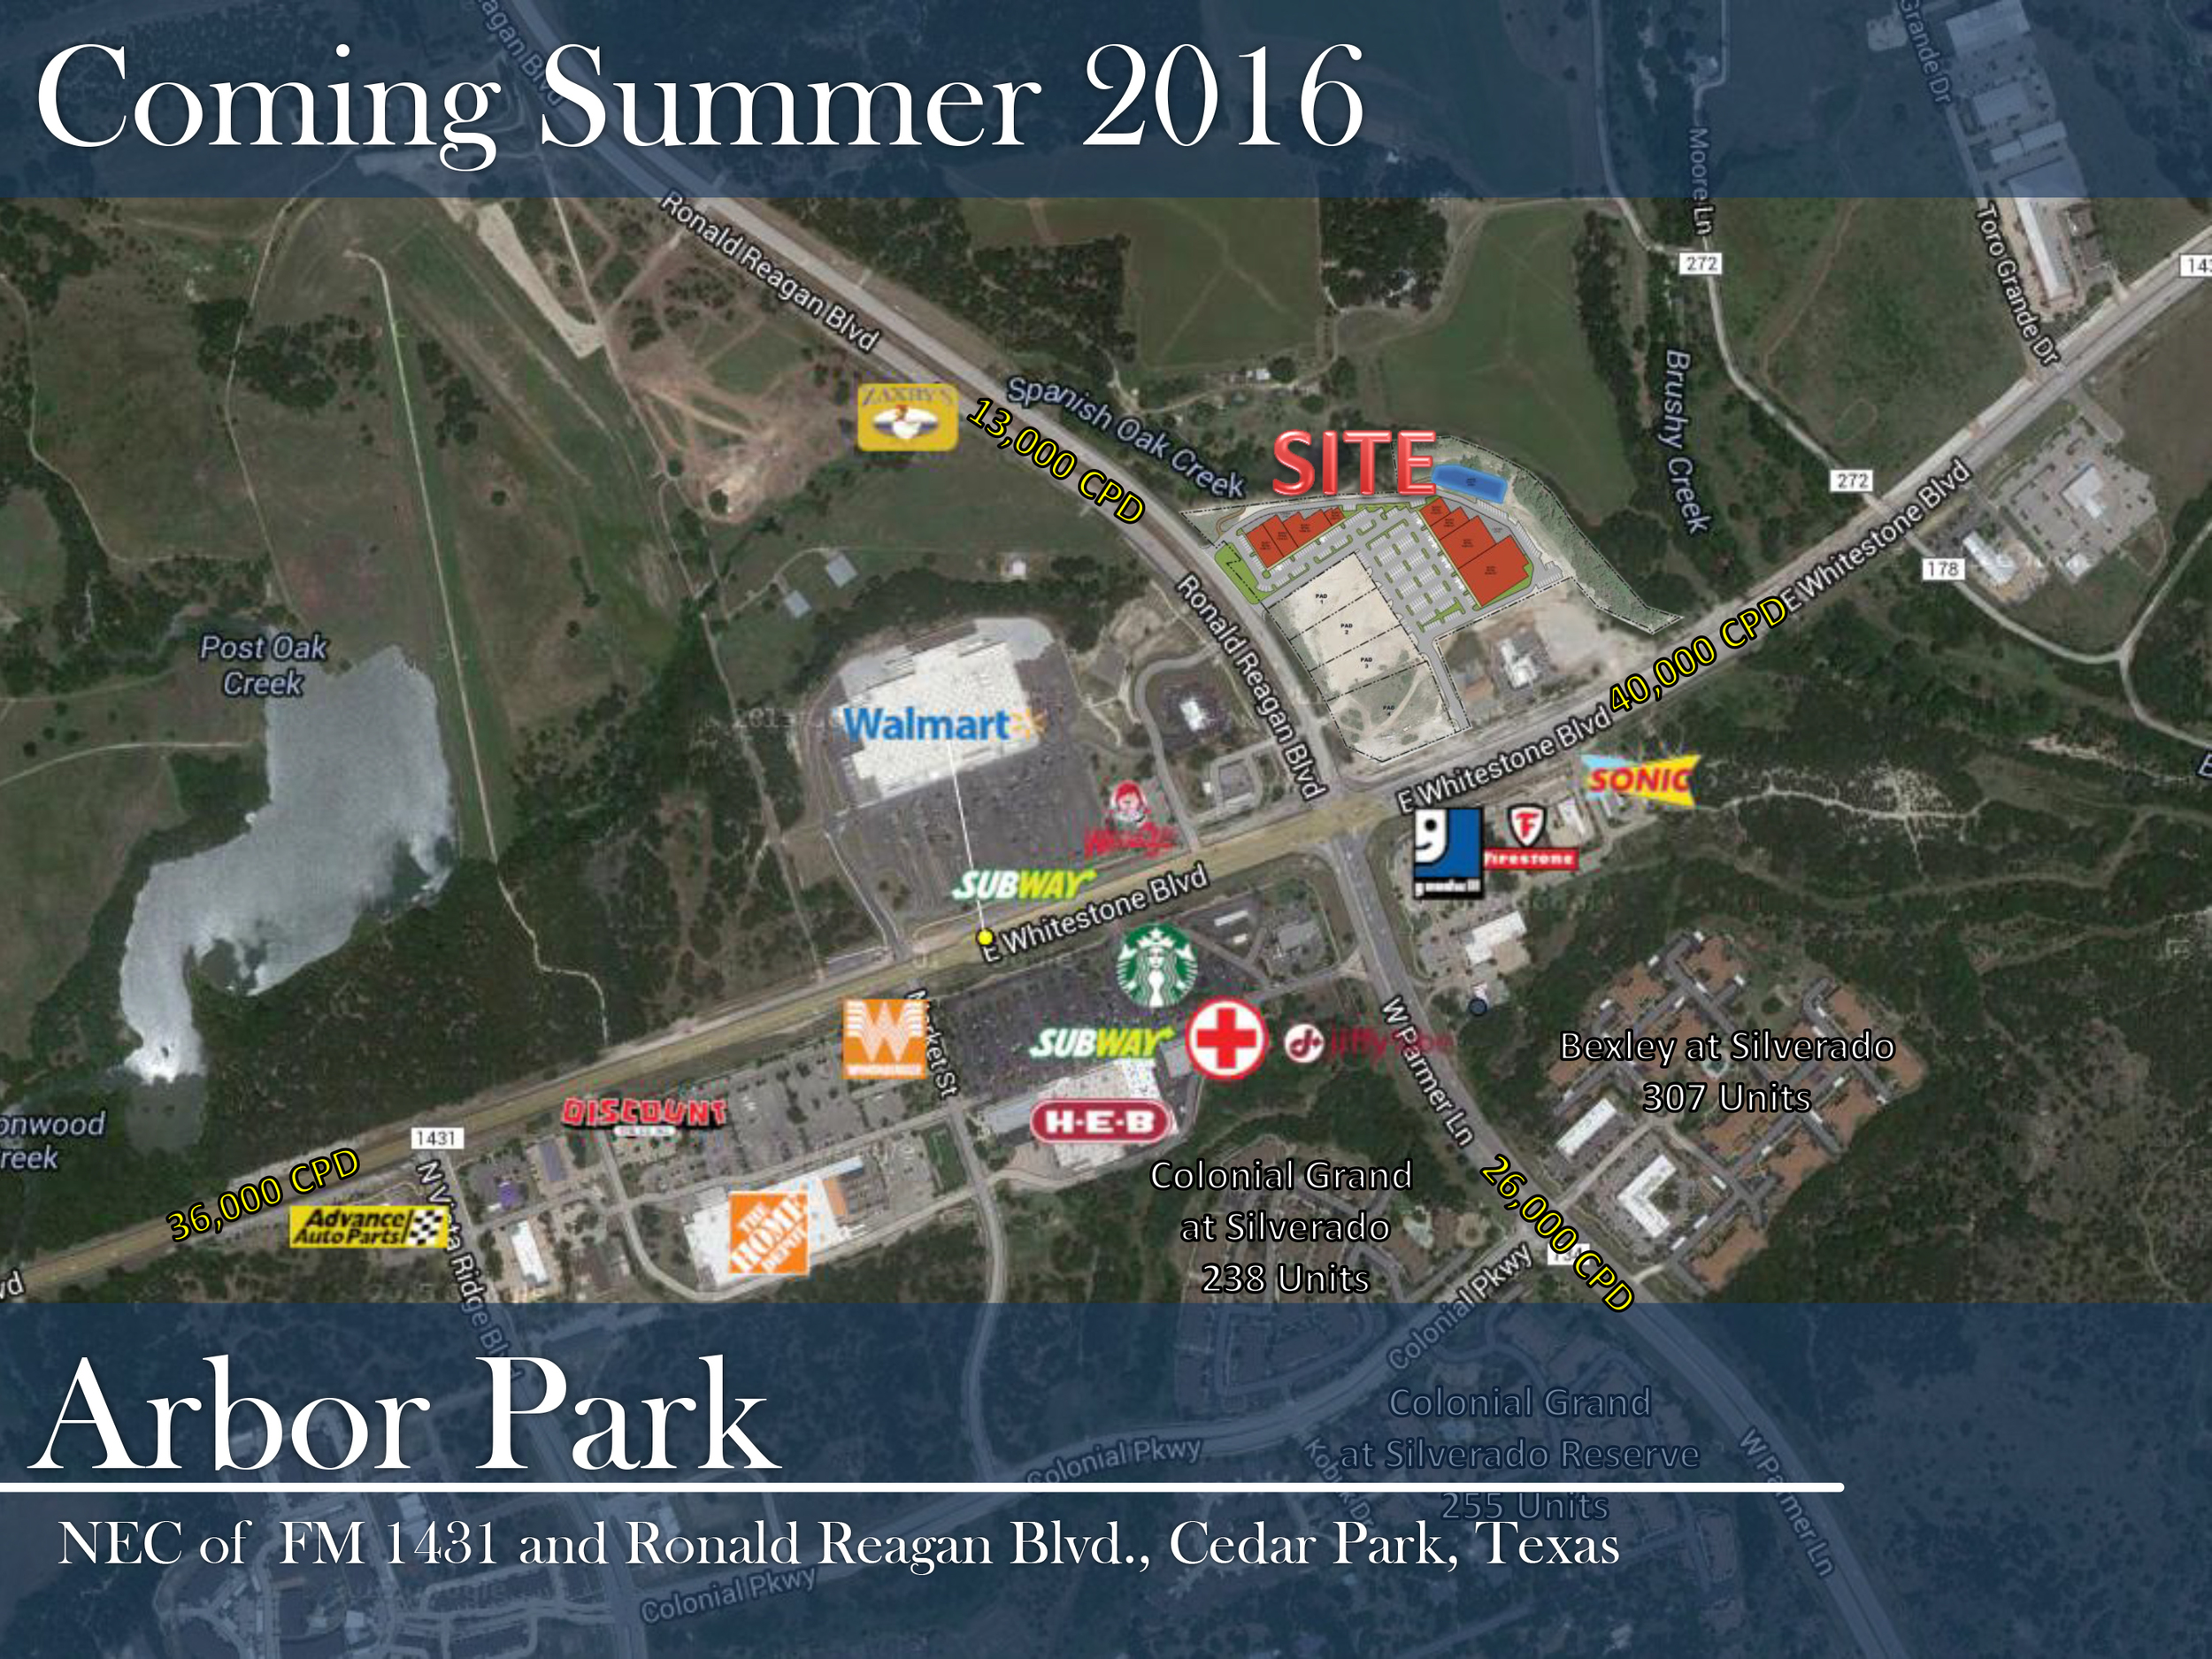 Arbor Park - Full Site Flyer-1.jpg